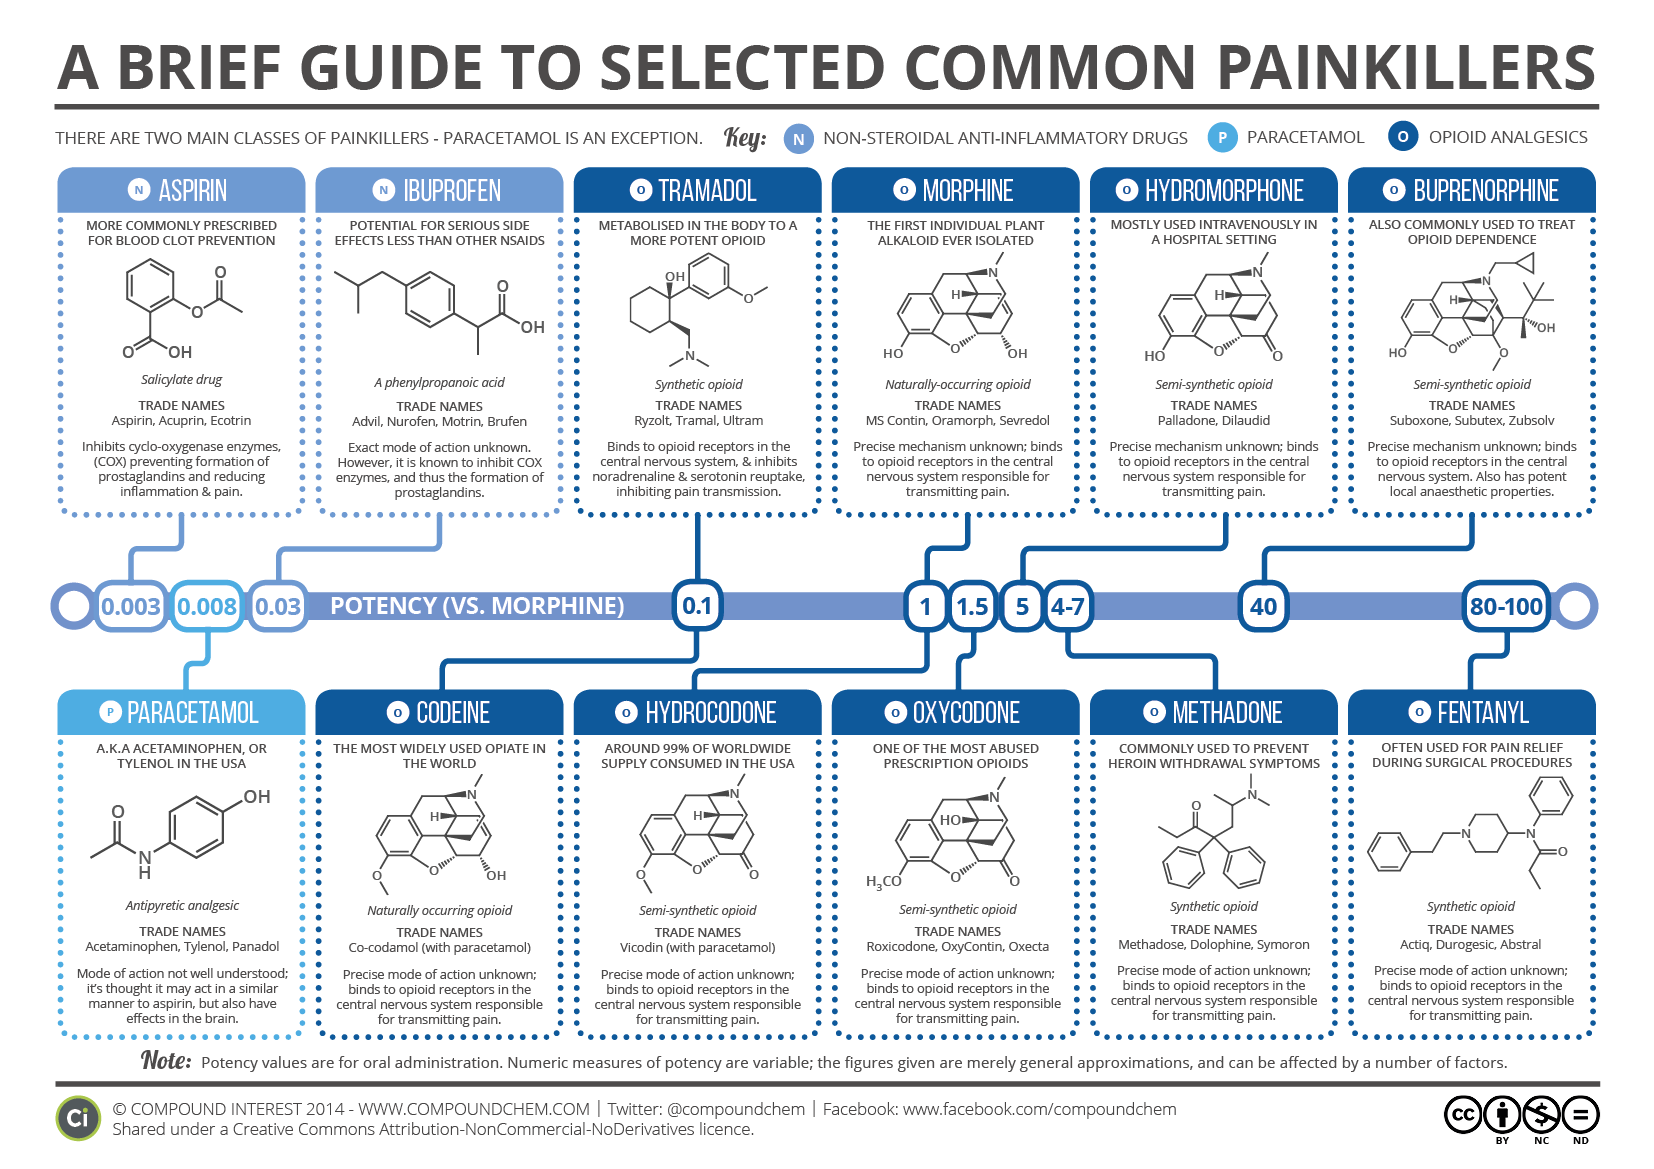 A Brief Guide to Common Painkillers | Compound Interest